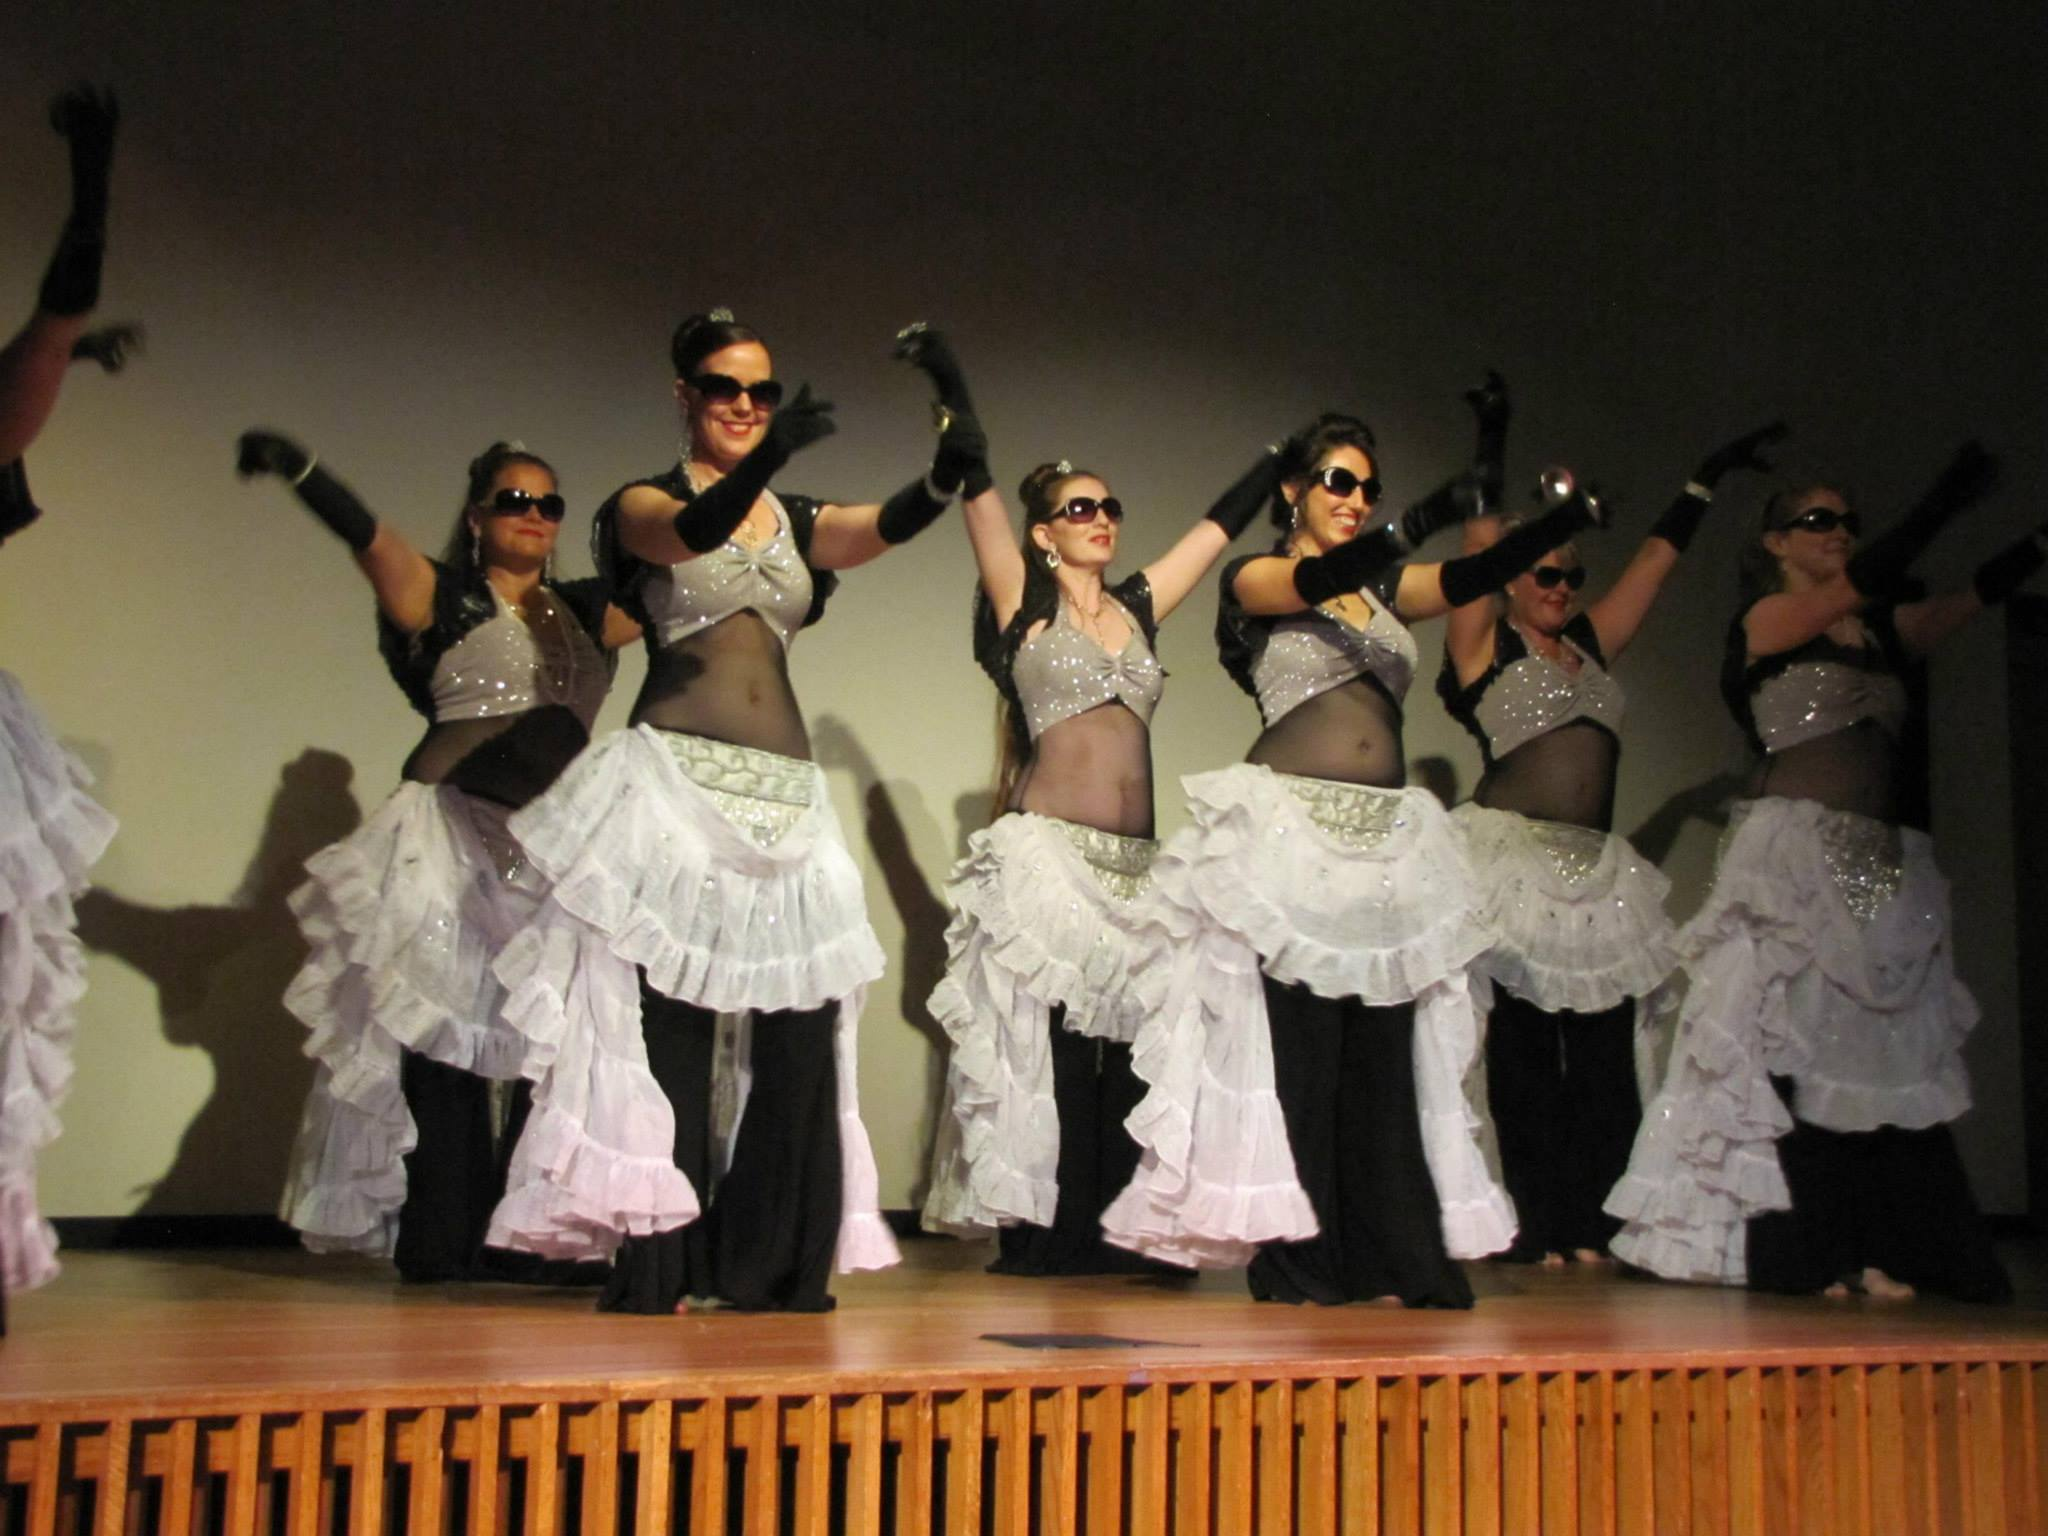 Middle Eastern/Belly Dance Performance